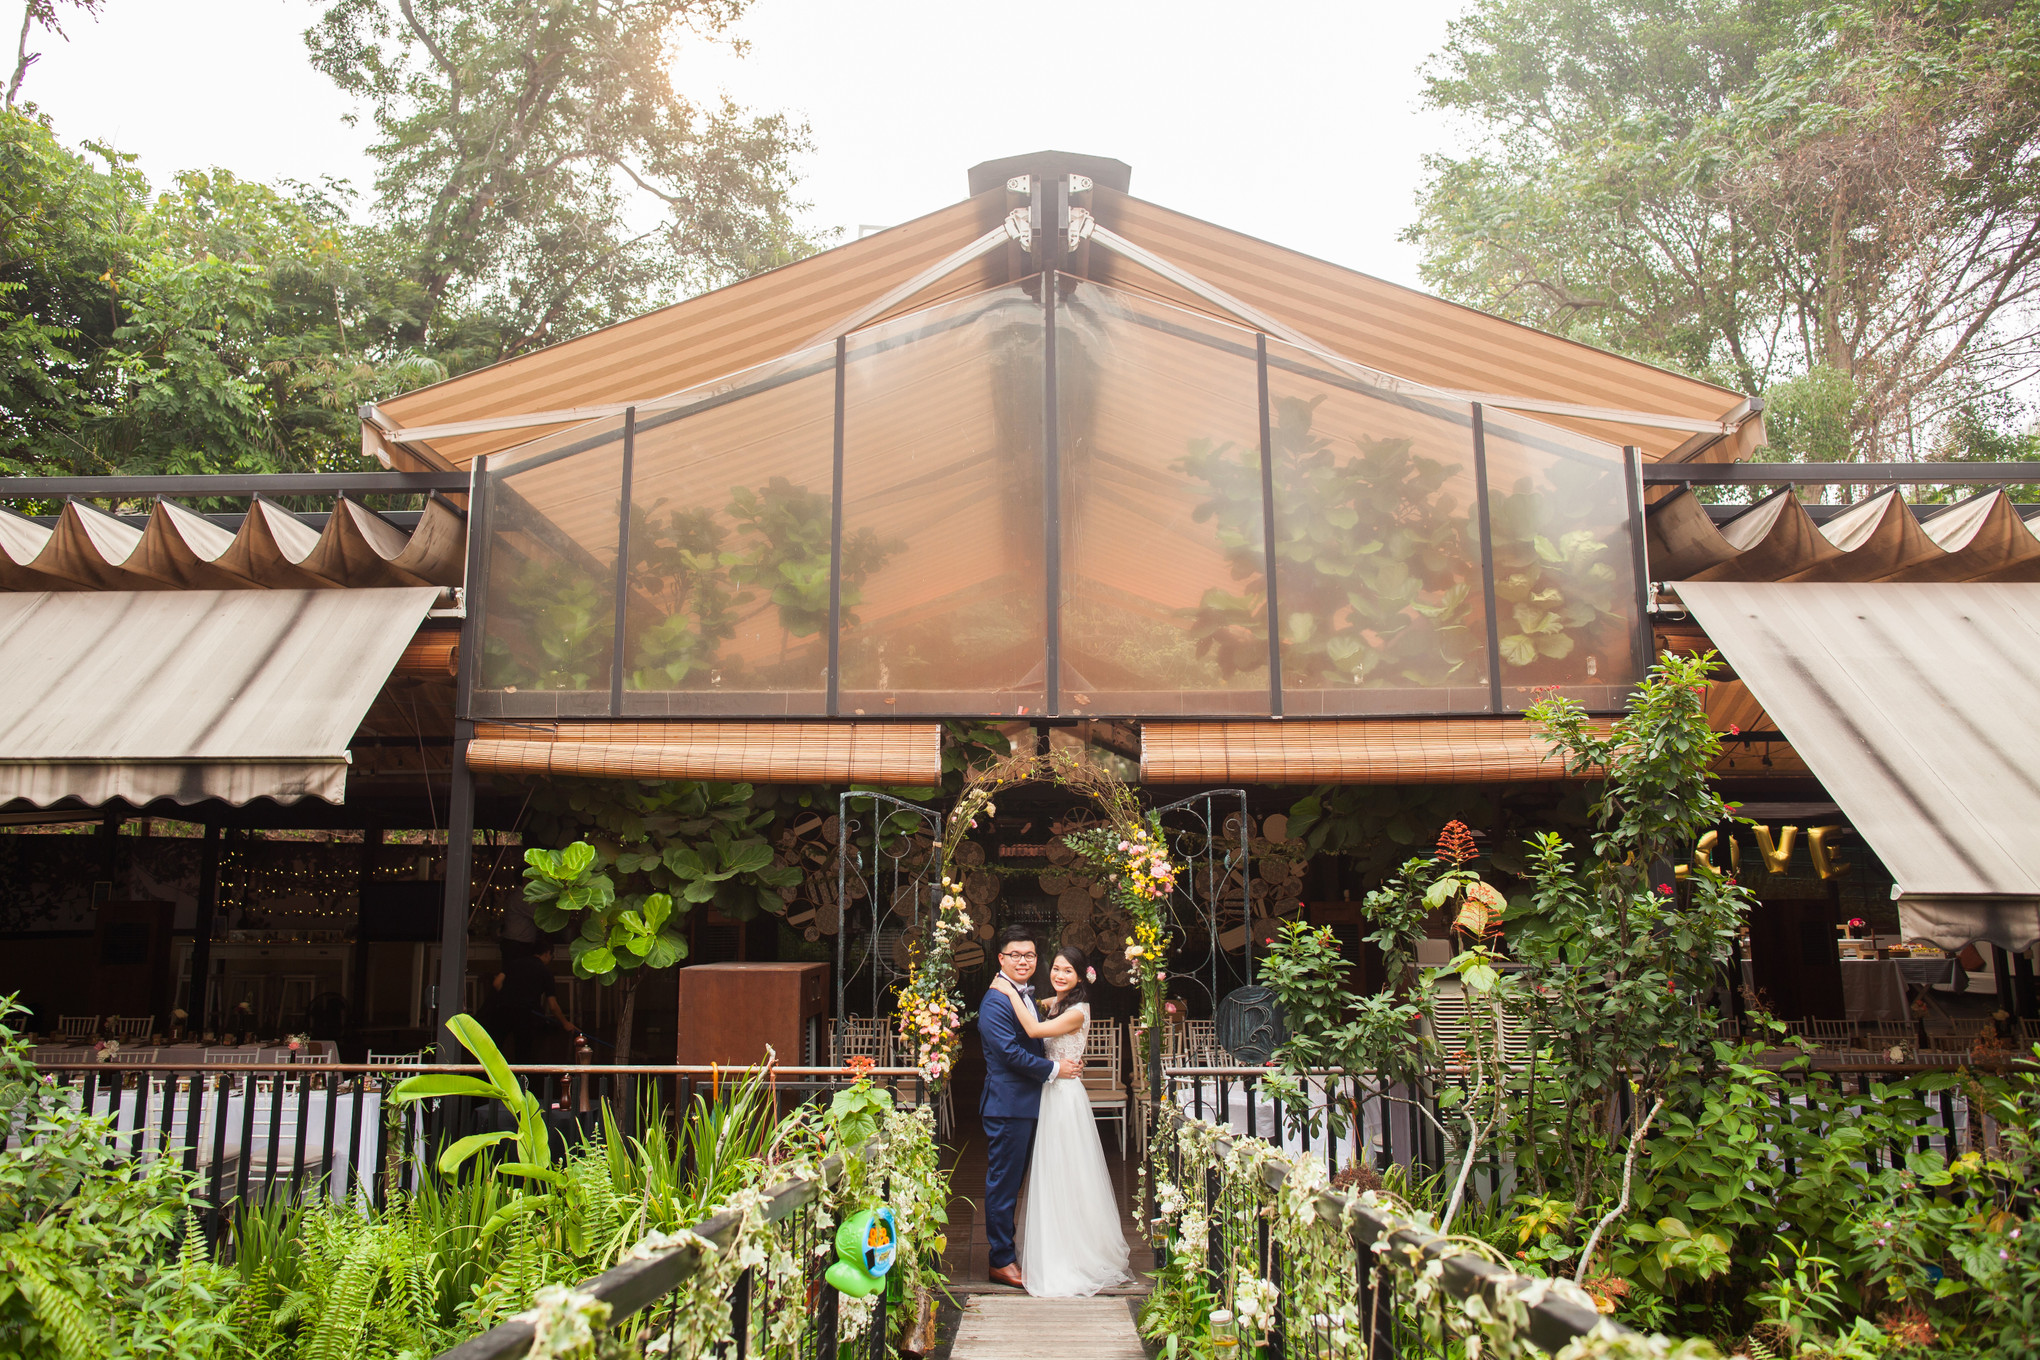 Andrew and Samantha's Rustic Chic Wedding at Nosh